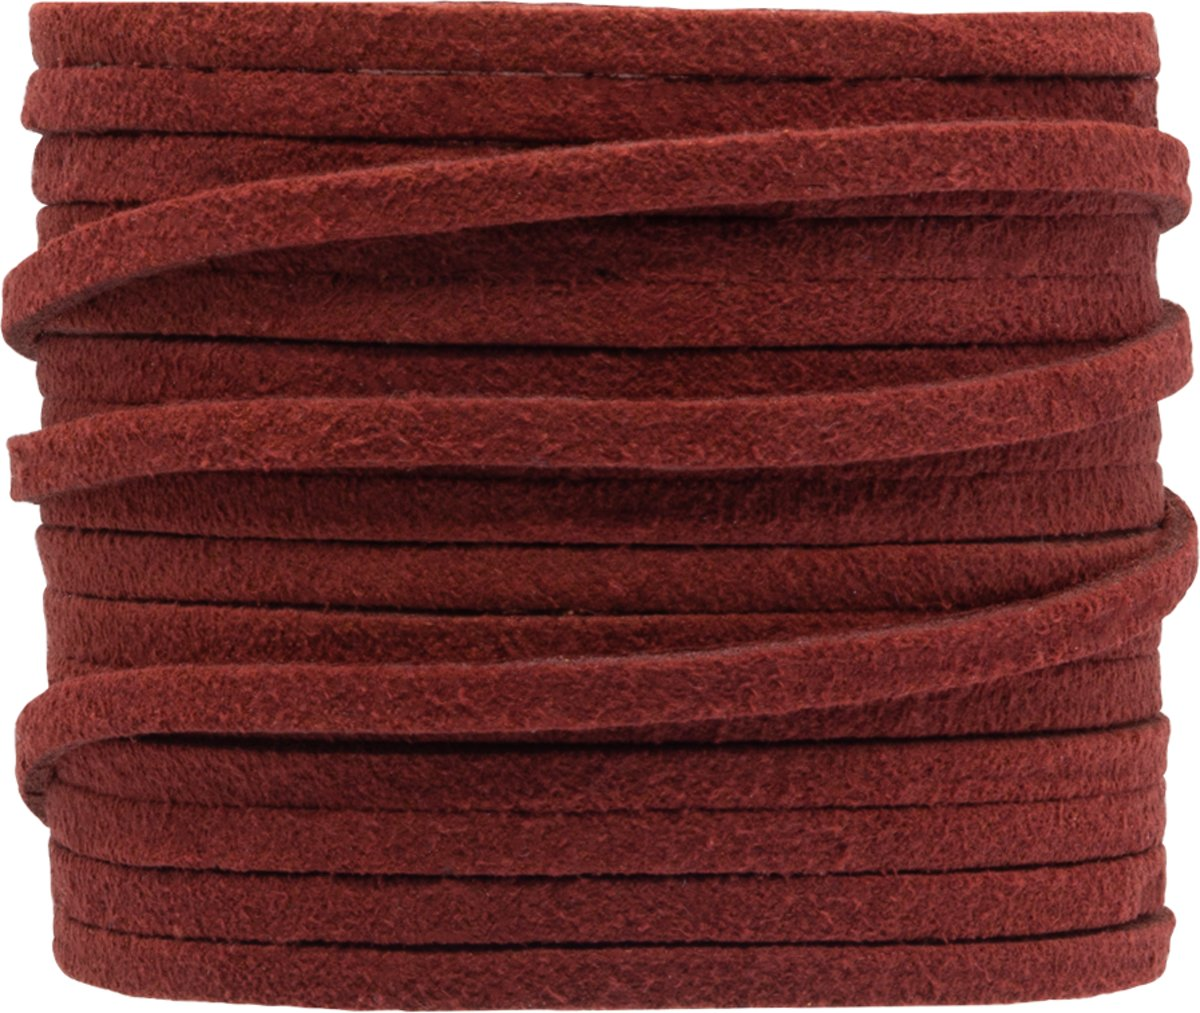 Faux Suede Veter (3 mm) Crimson Red (5 Meter)